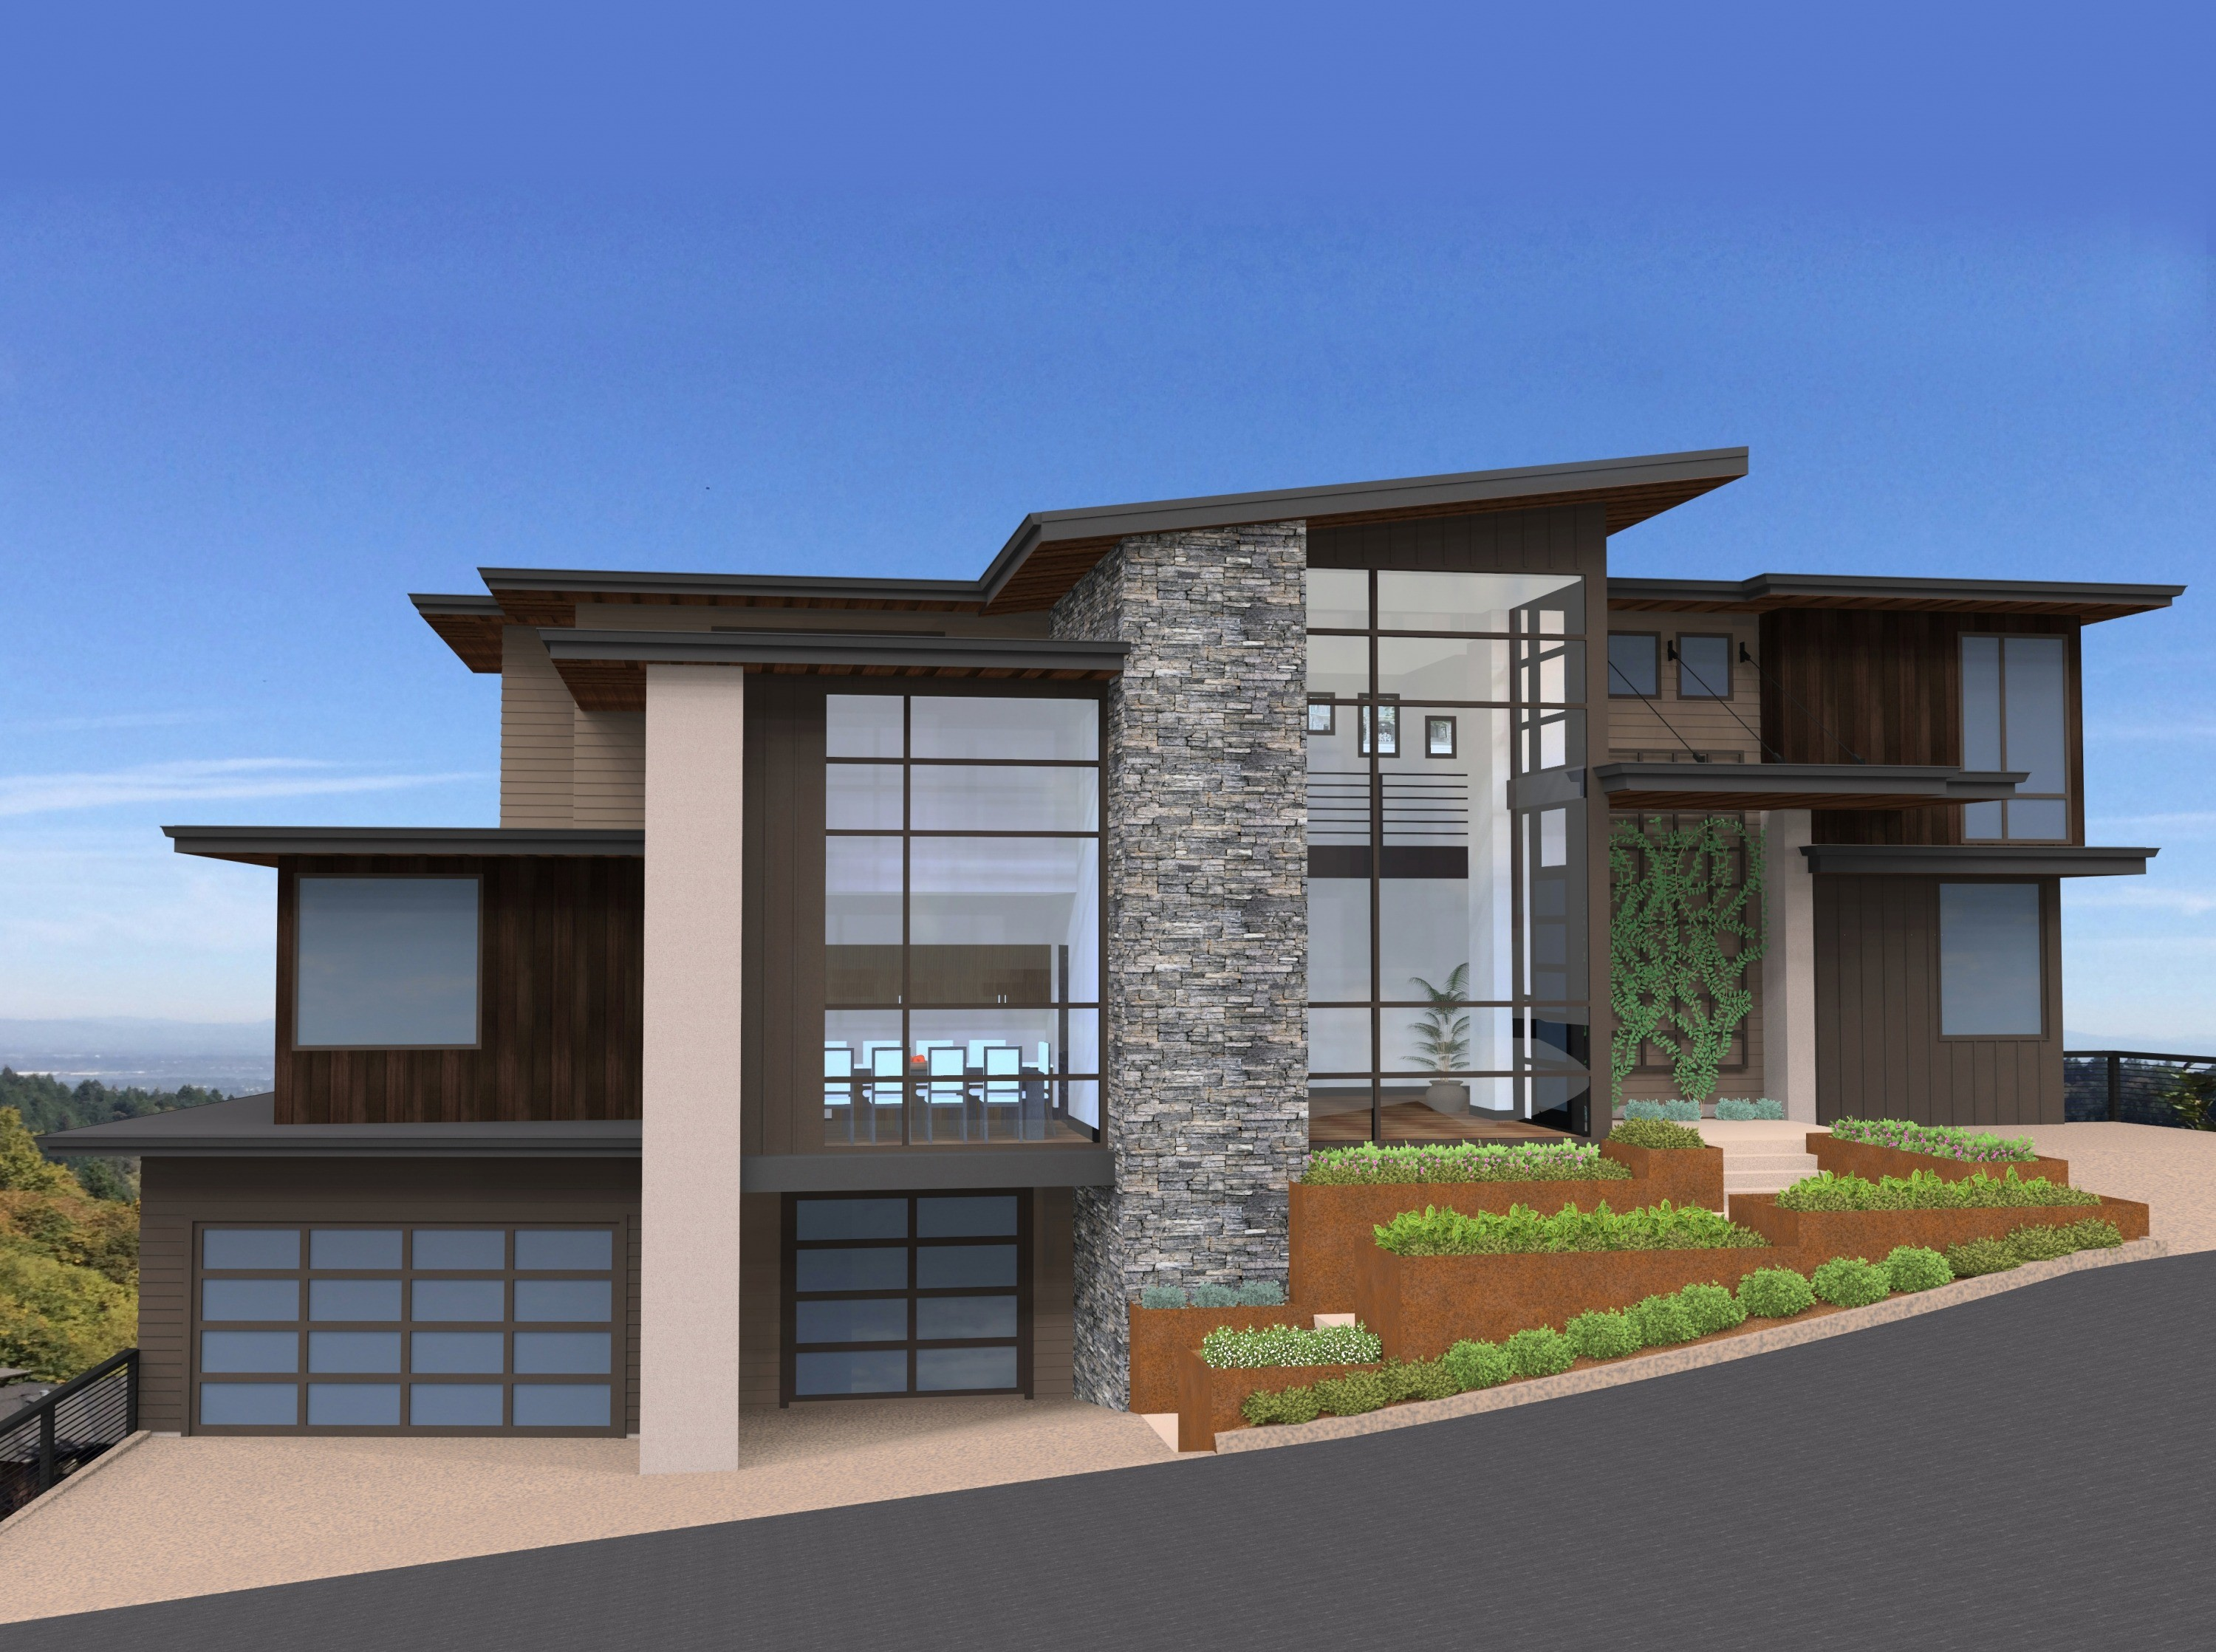 Malibu | Modern House Plan for a Sloped Lot by Mark Stewart